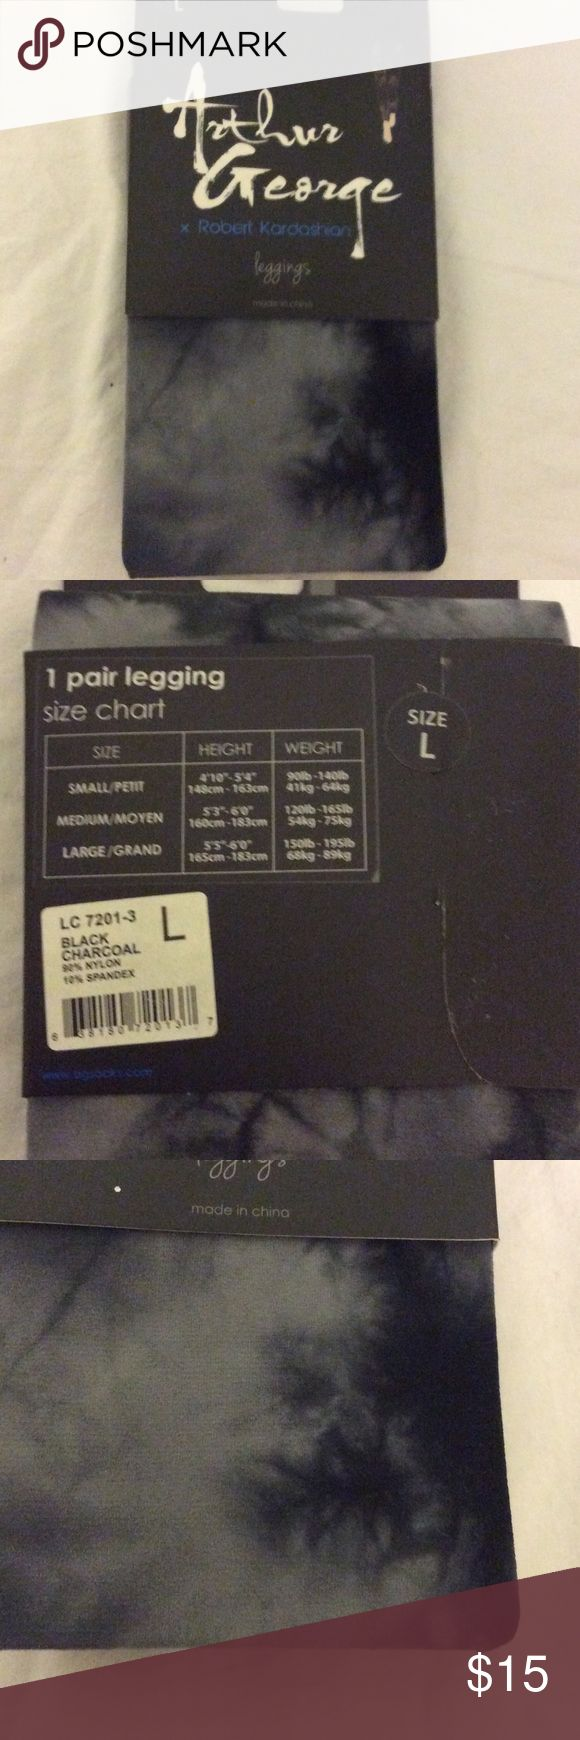 Arthur George Robert Kardashian Leggings Size large leggings.  New unopened package.  Nylon and spandex fabric.  Color is listed as charcoal. Arthur George Robert Kardashian Pants Leggings